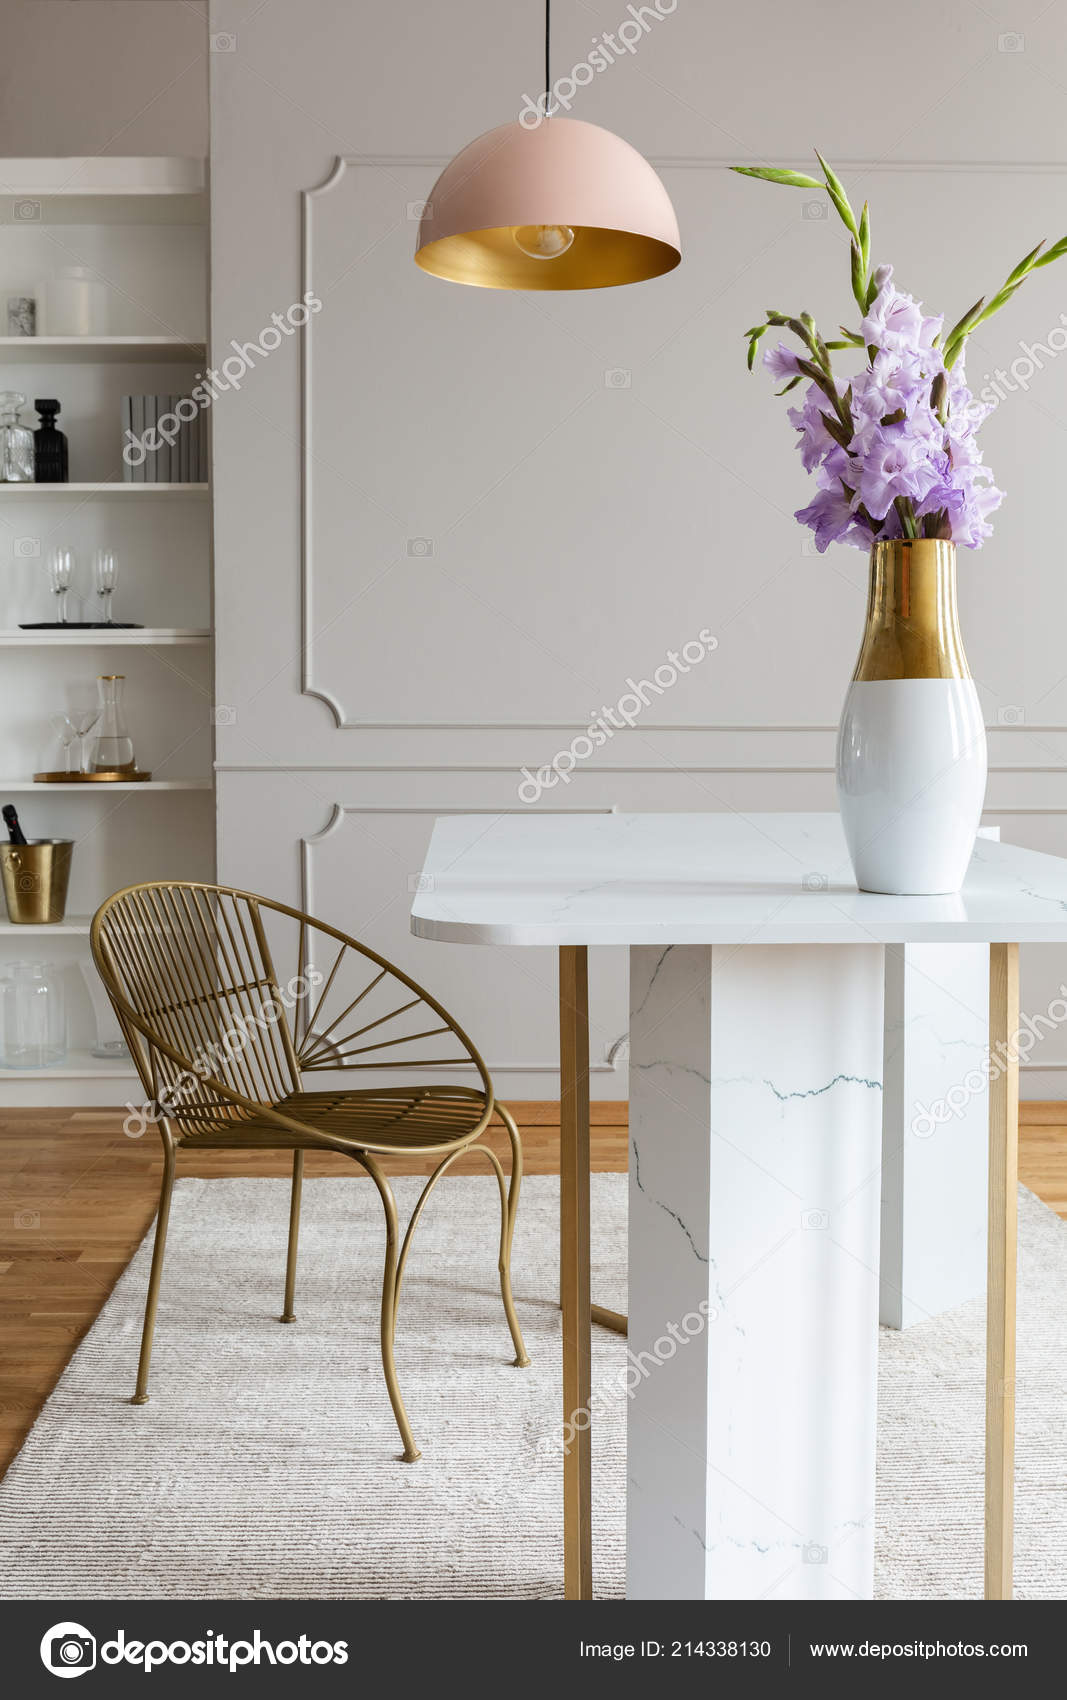 Marble And Rose Gold Bedroom Flowers White Marble Table Gold Chair Pink Lamp Grey Dining Stock Photo C Photographee Eu 214338130